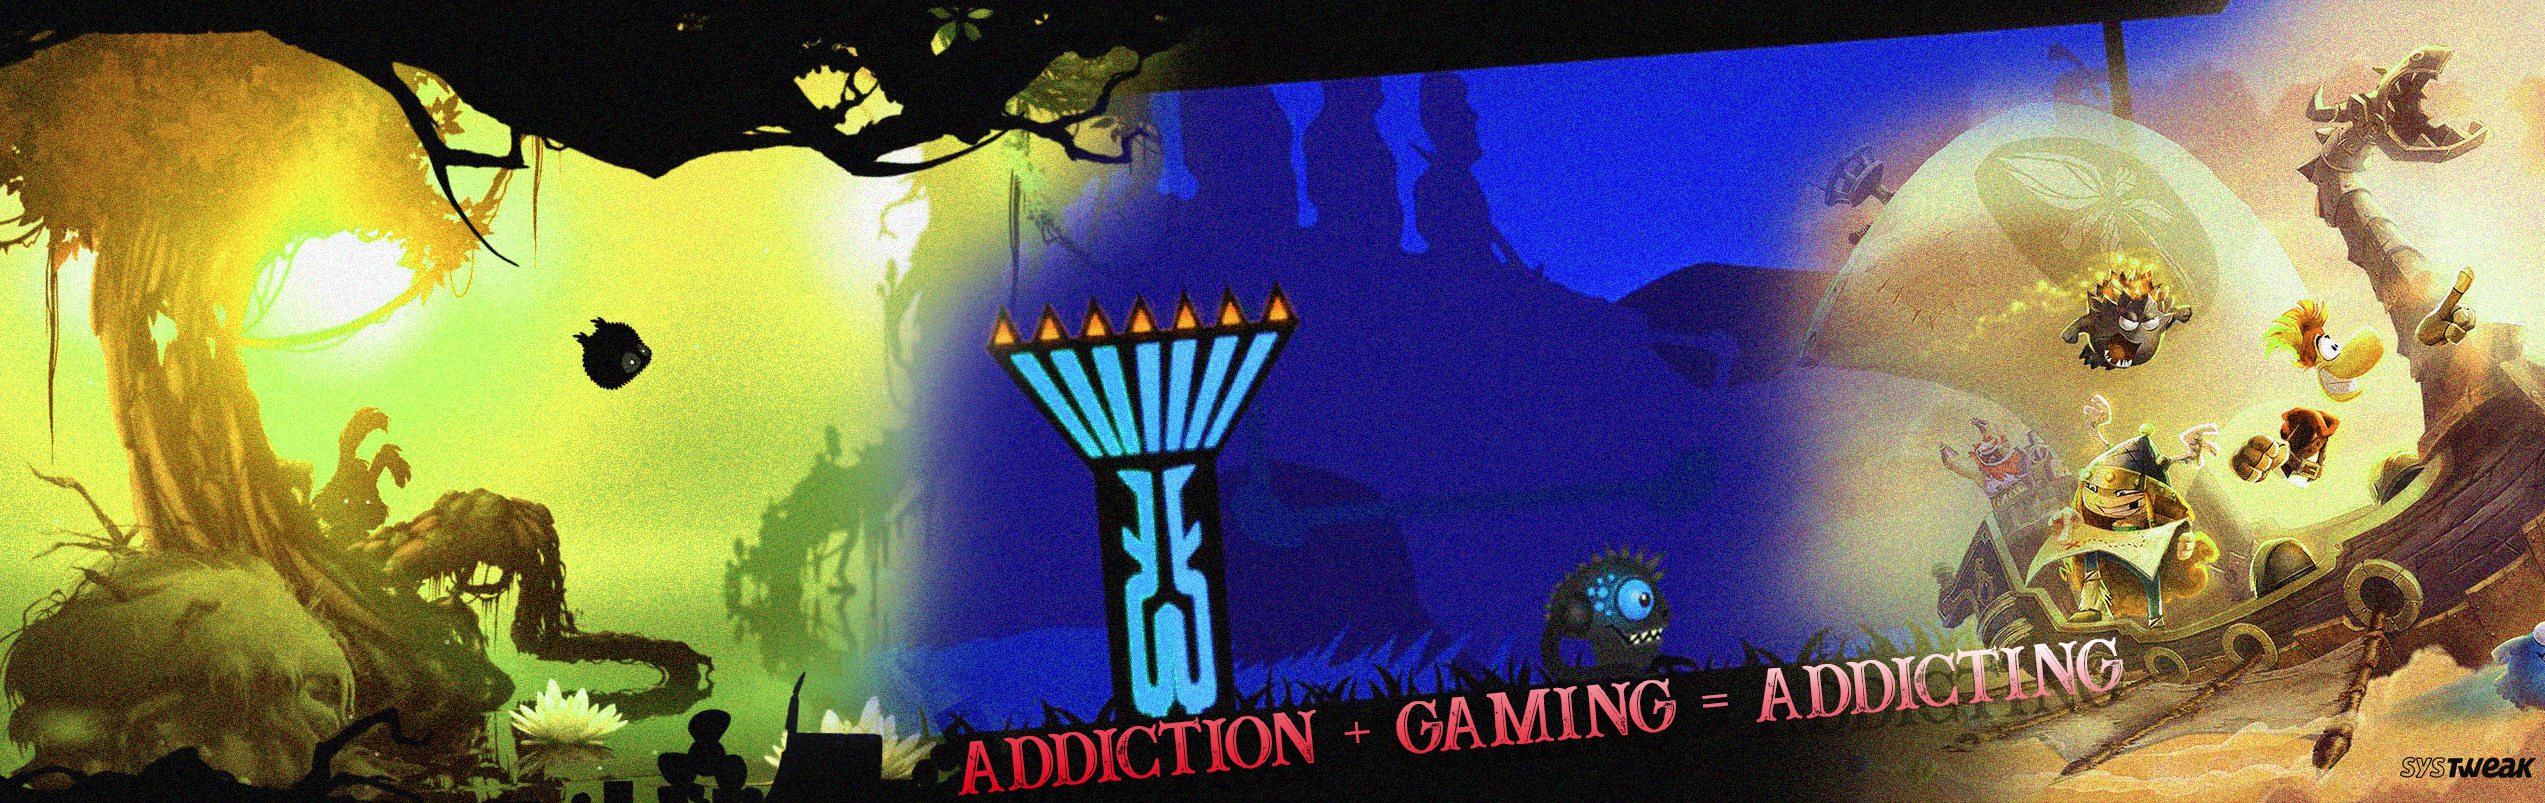 Most Addictive Platform Games for Android